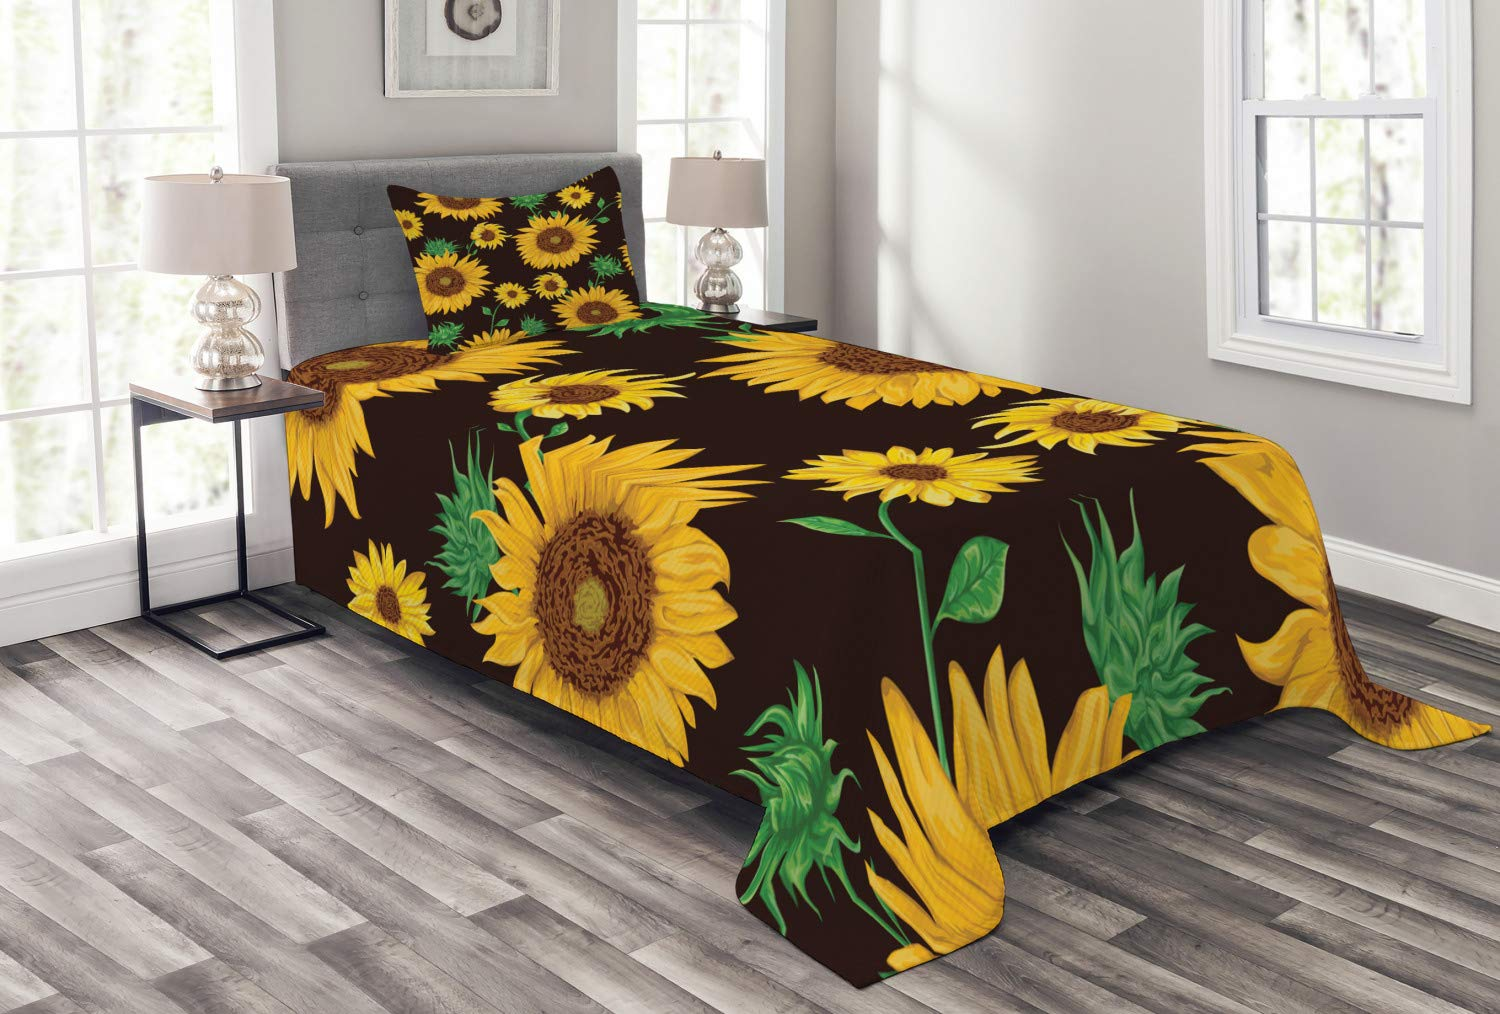 Lunarable Sunflower Bedspread, Earth Tones Floral Buds Leaves Spring Nature Vintage Pattern, Decorative Quilted 2 Piece Coverlet Set with Pillow Sham, Twin Size, Yellow Green